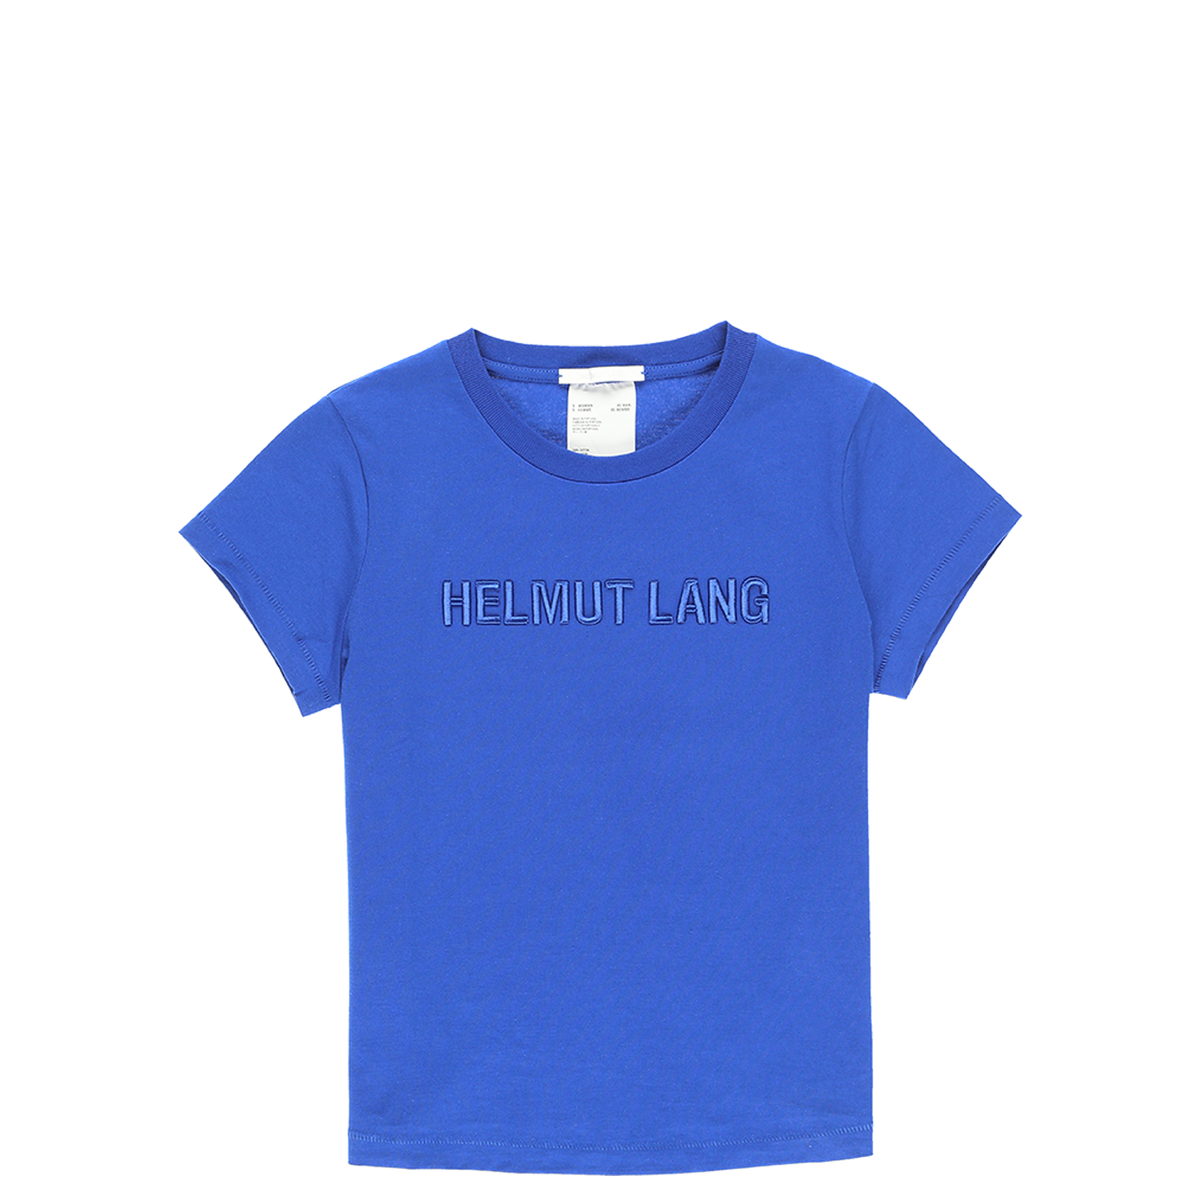 Helmut Lang Women's Standard Raised Embroidery Baby T-Shirt  - XHIBITION